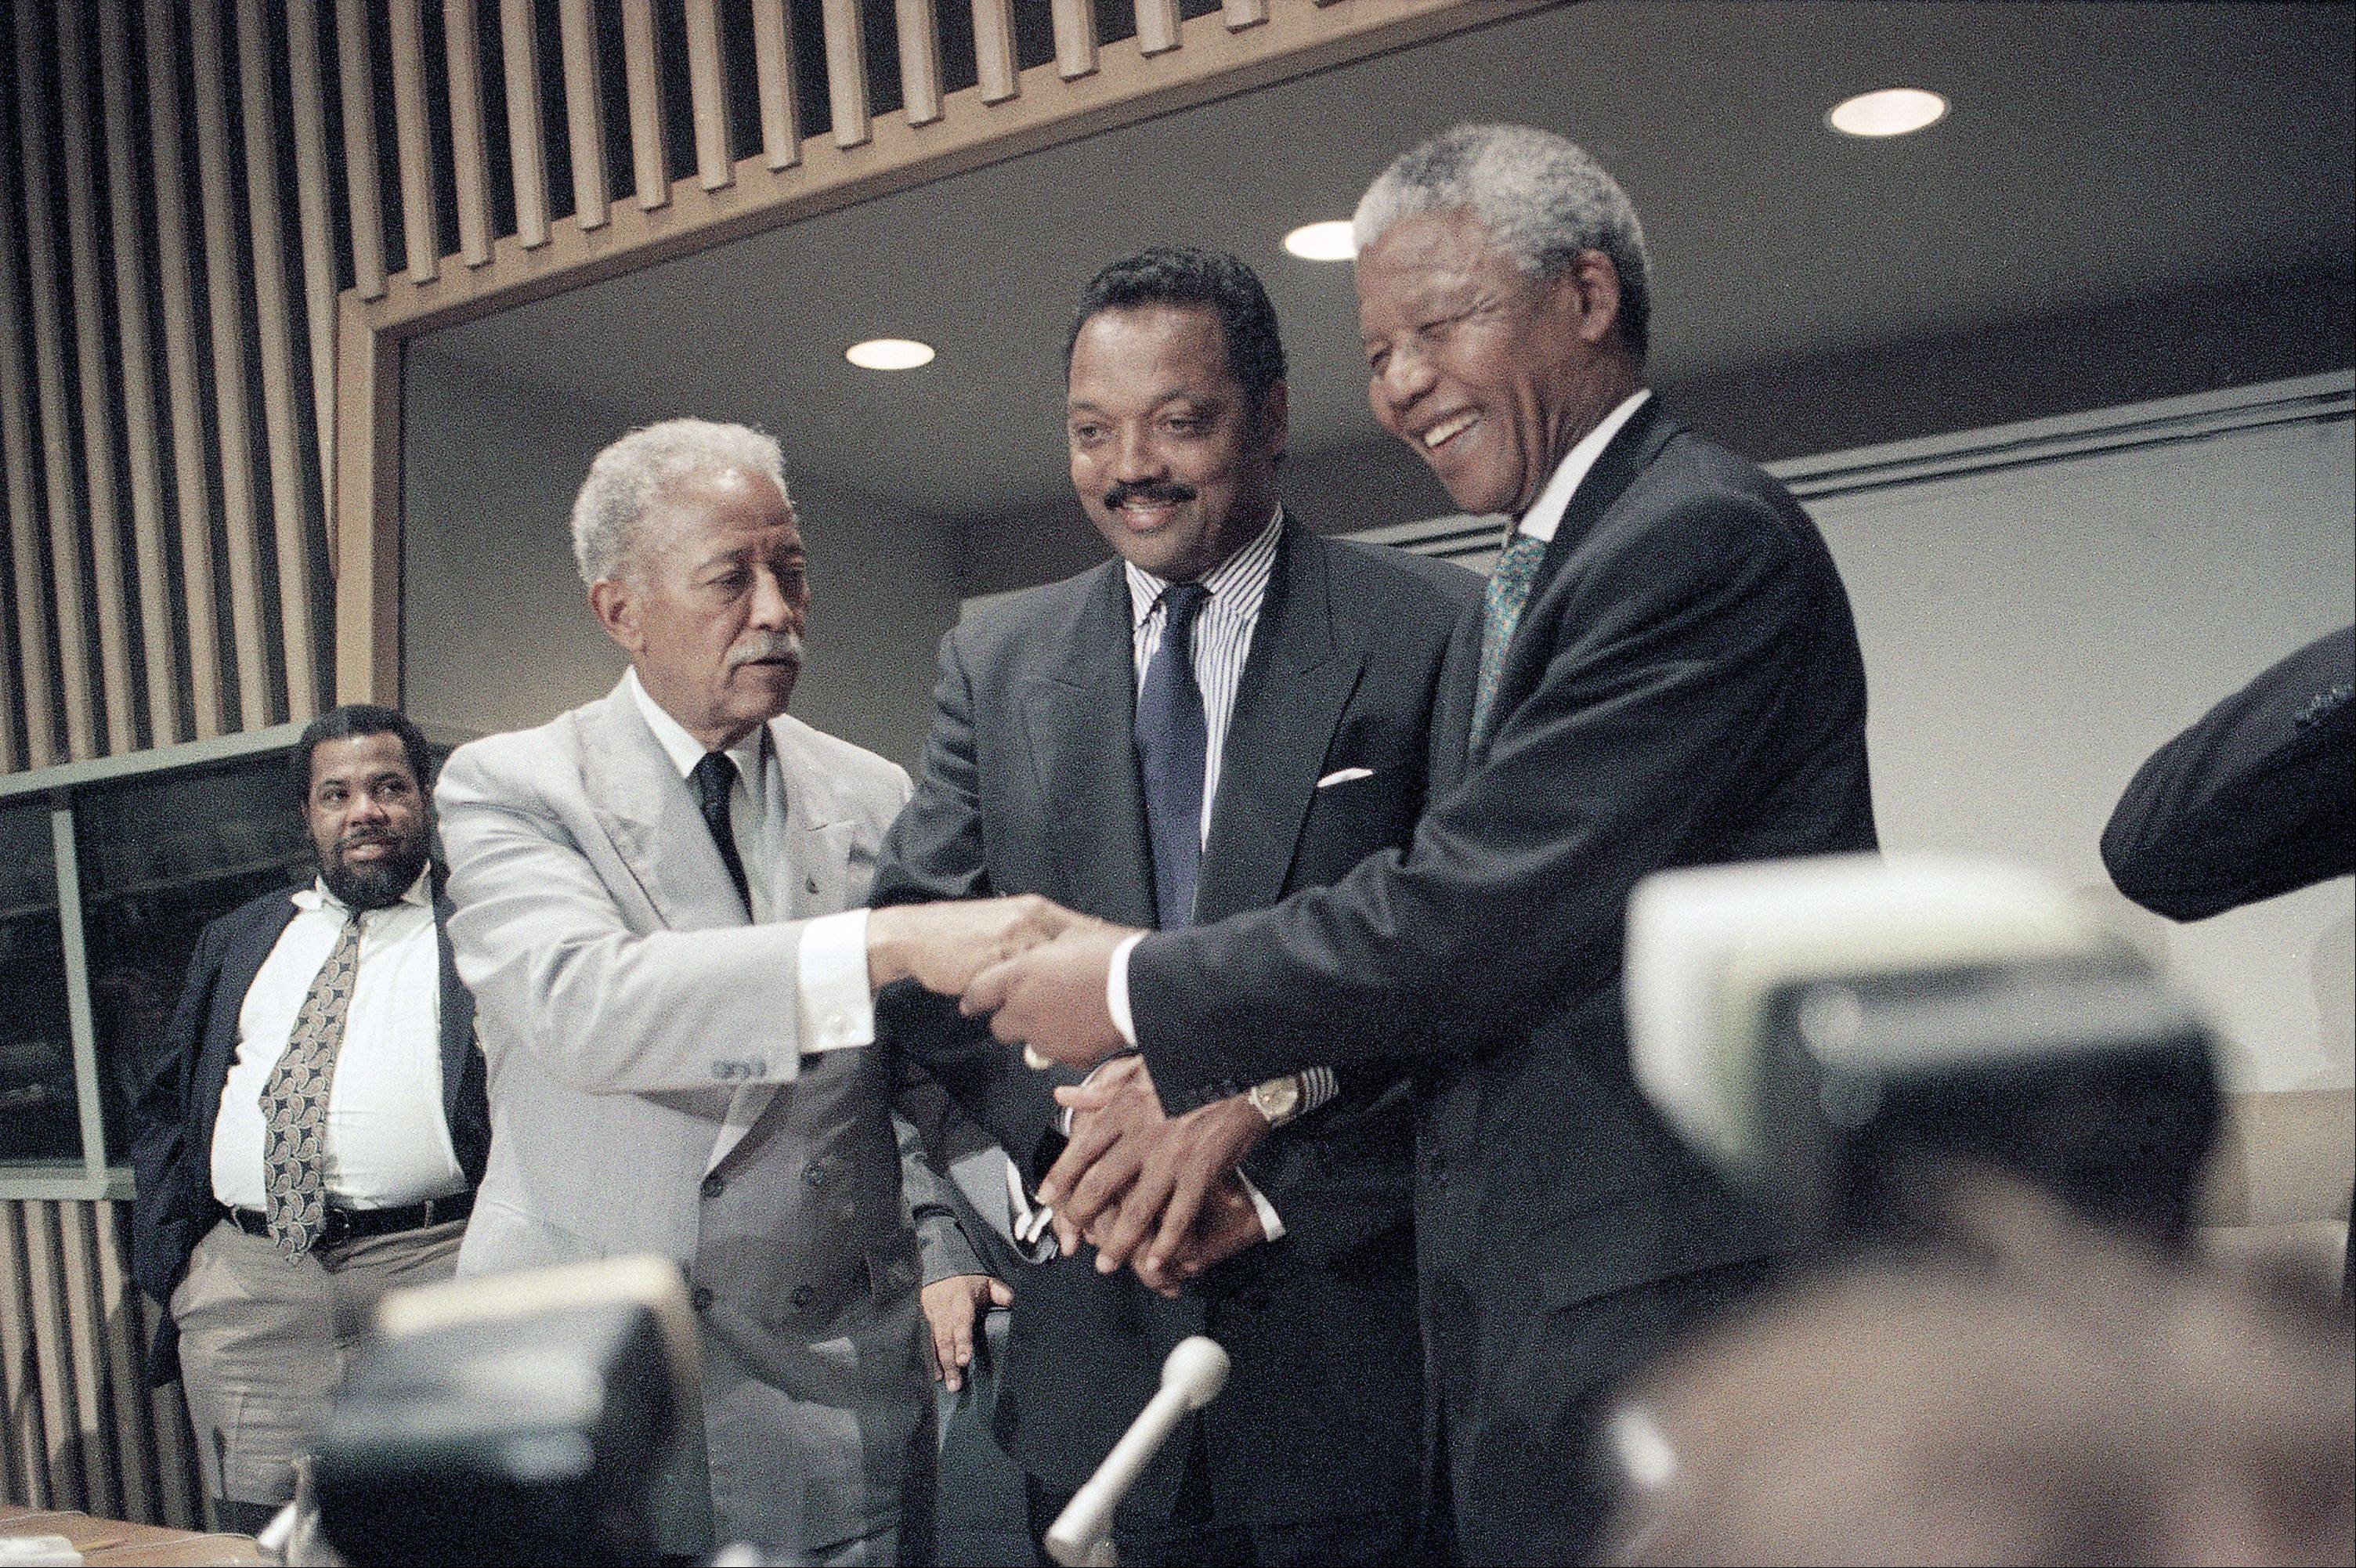 New York City Mayor David Dinkins, left, and the Rev. Jesse Jackson, center, joins hands with African National Congress President Nelson Mandela Friday, Sept. 24, 1993 in New York, following a press conference at the United Nations.